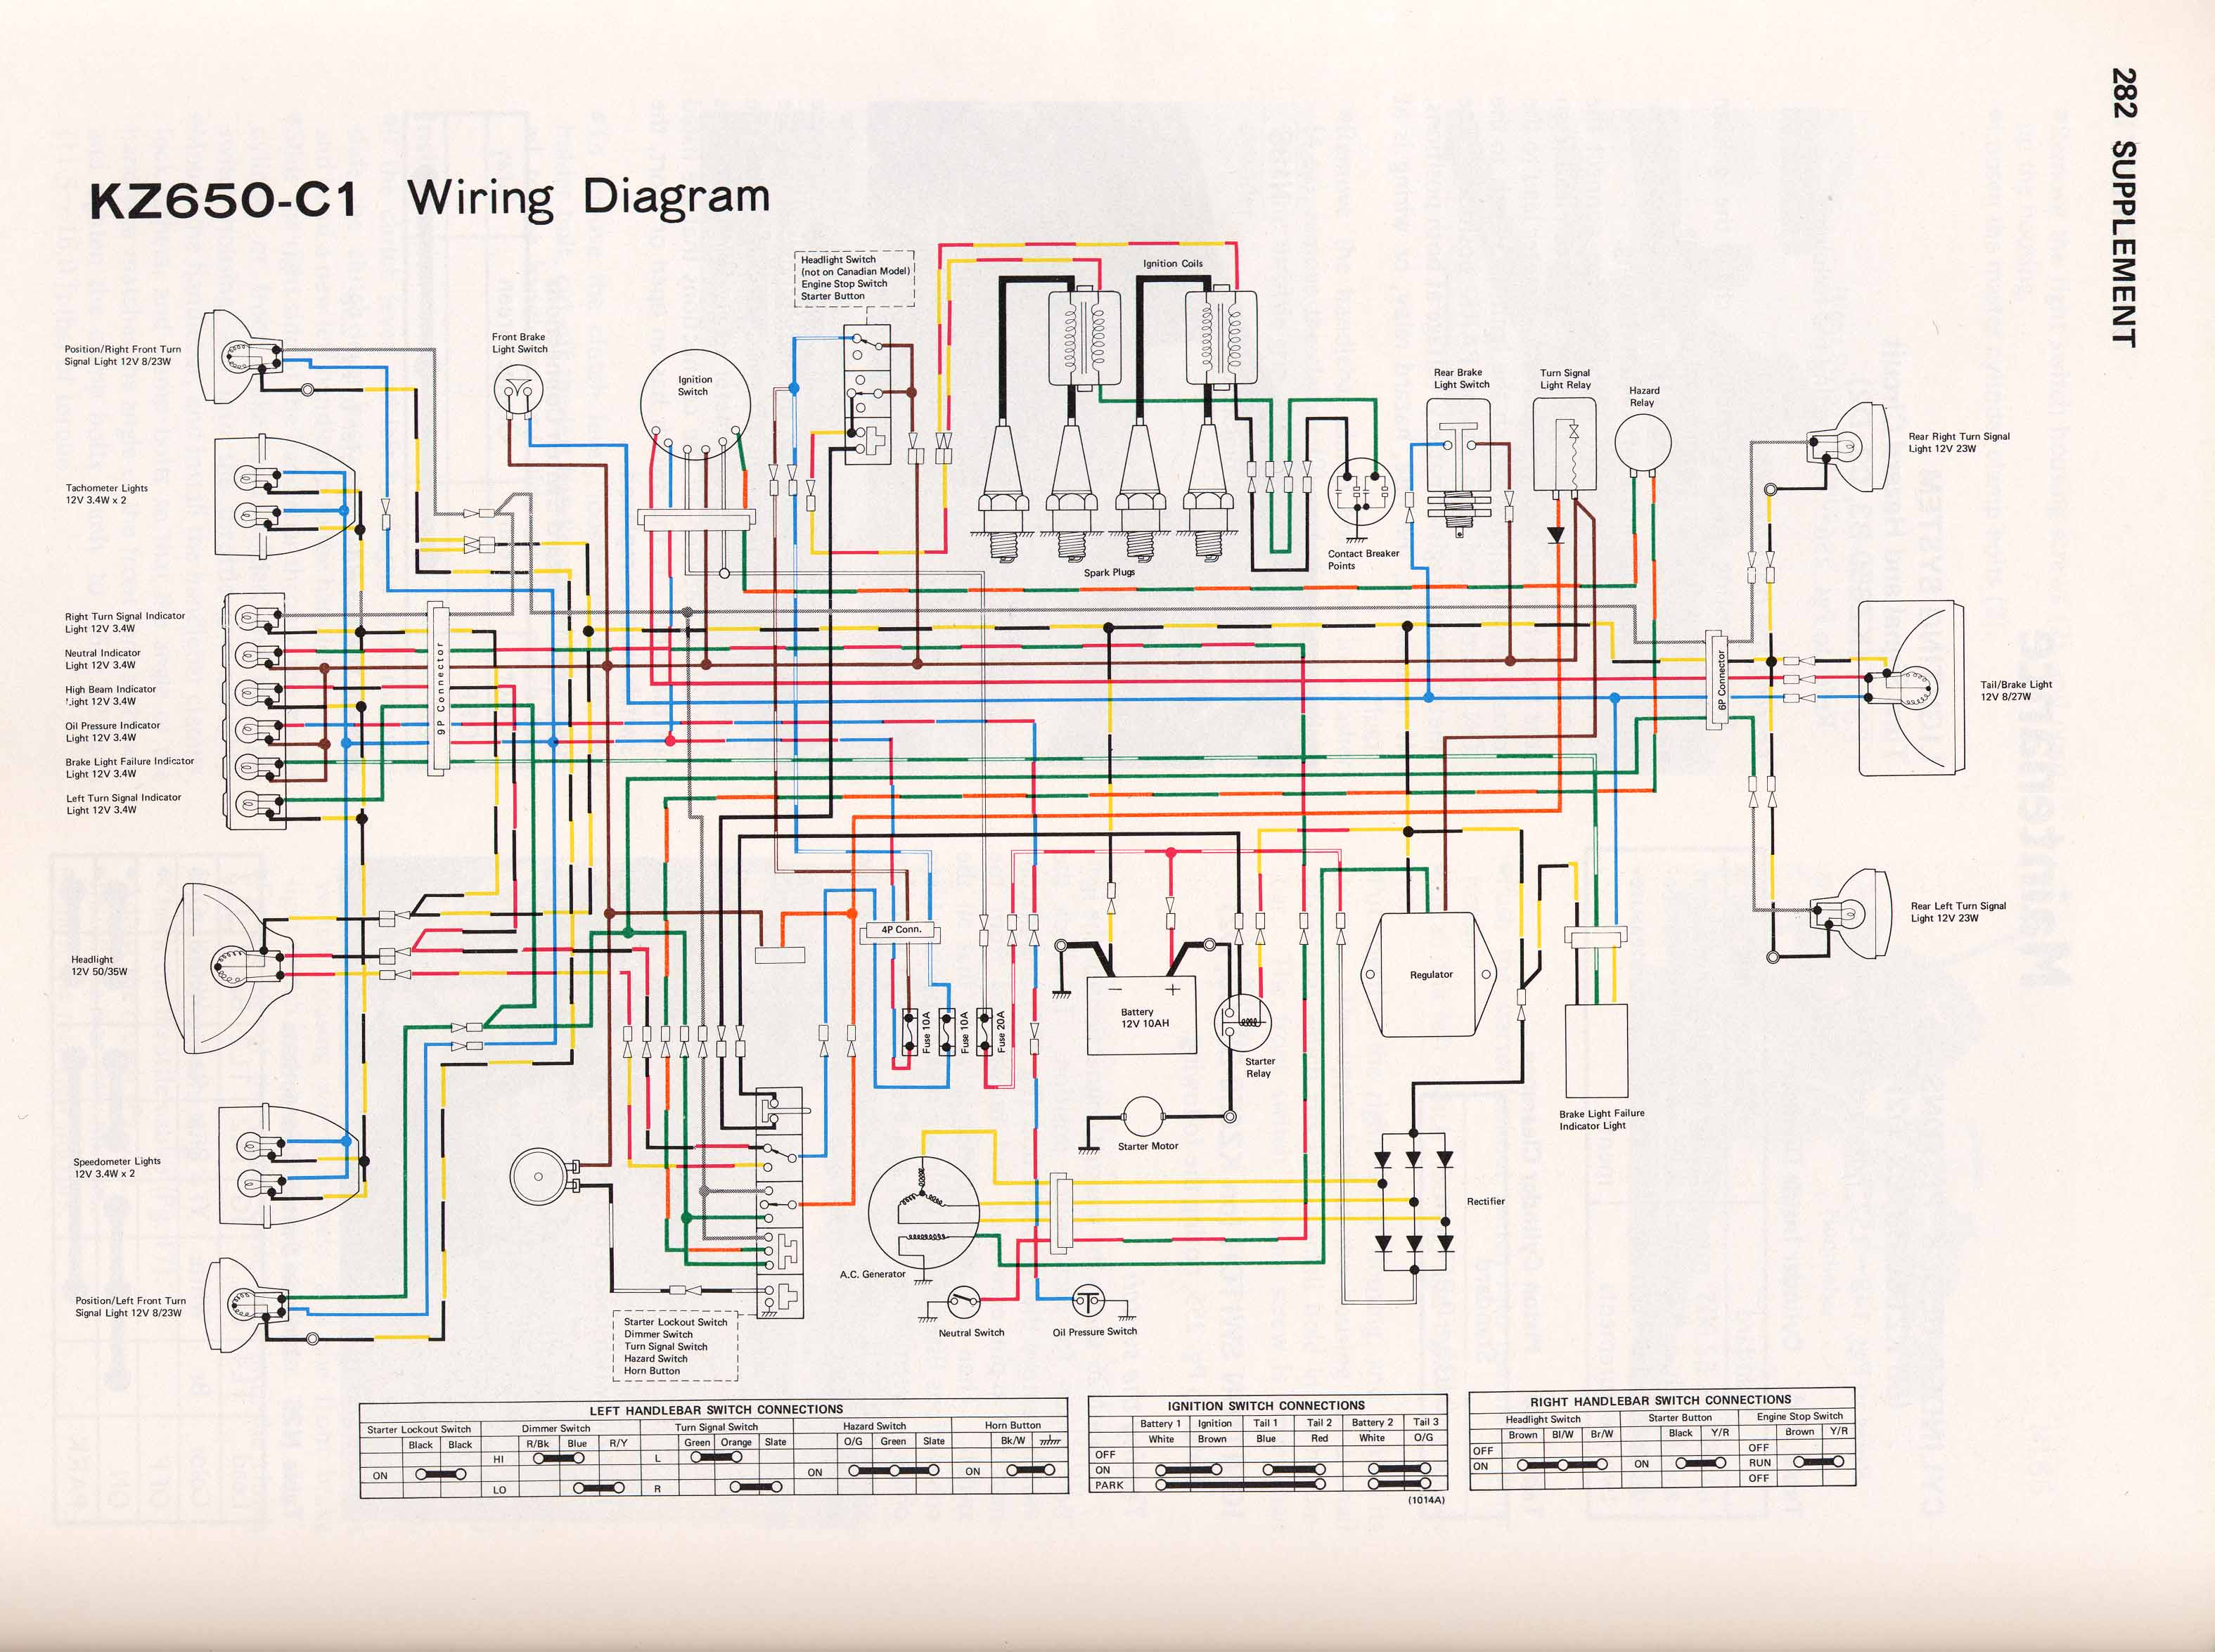 227d8 kz650 wiring diagram digital resources yamaha wiring schematic yamaha 600 2011 wiring diagram #12